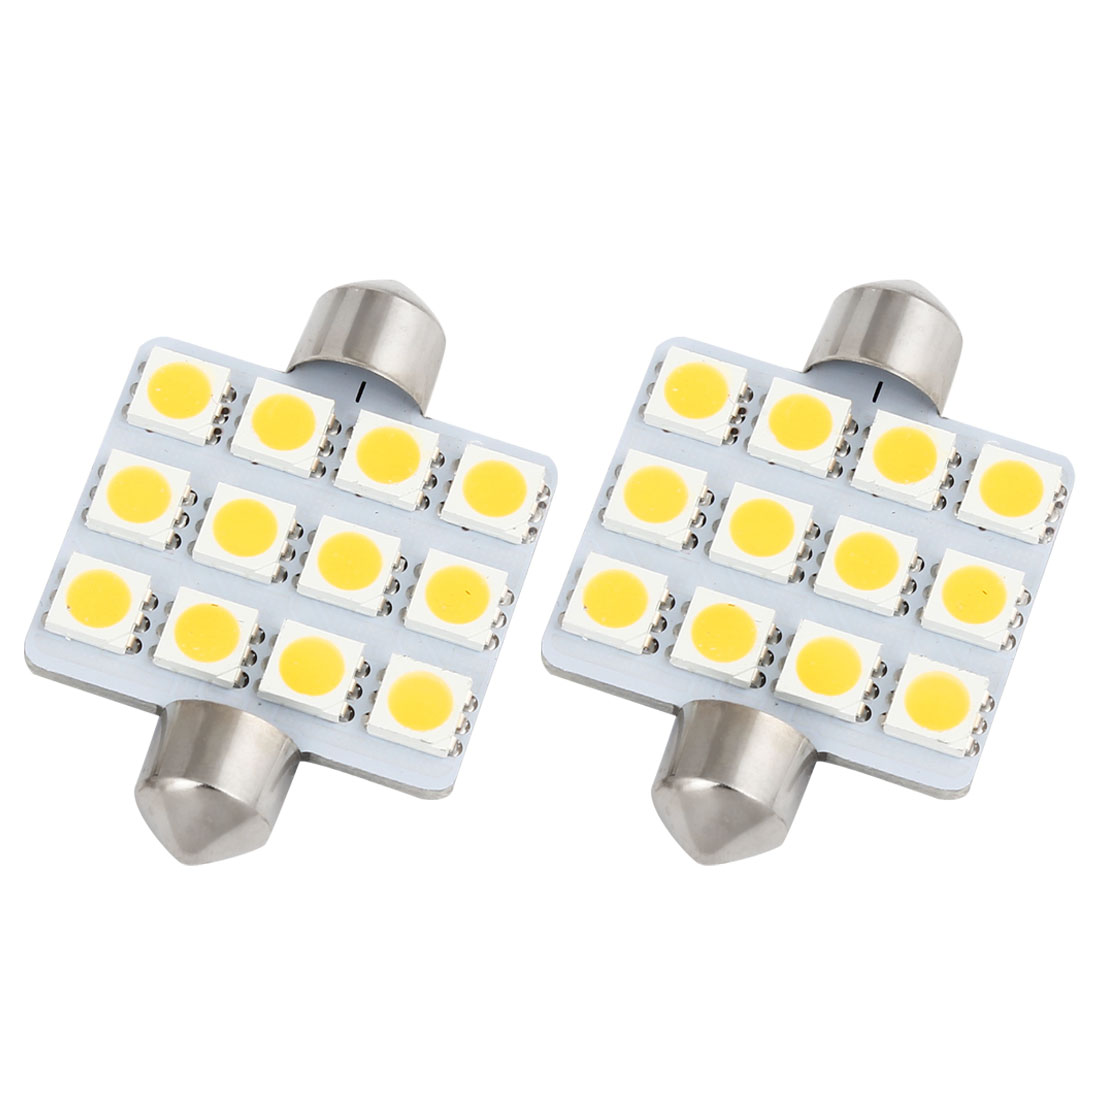 "2Pcs 42mm 1.65"" 5050 SMD 12-LED Festoon Dome Light Warm White 211 560 578 Internal"